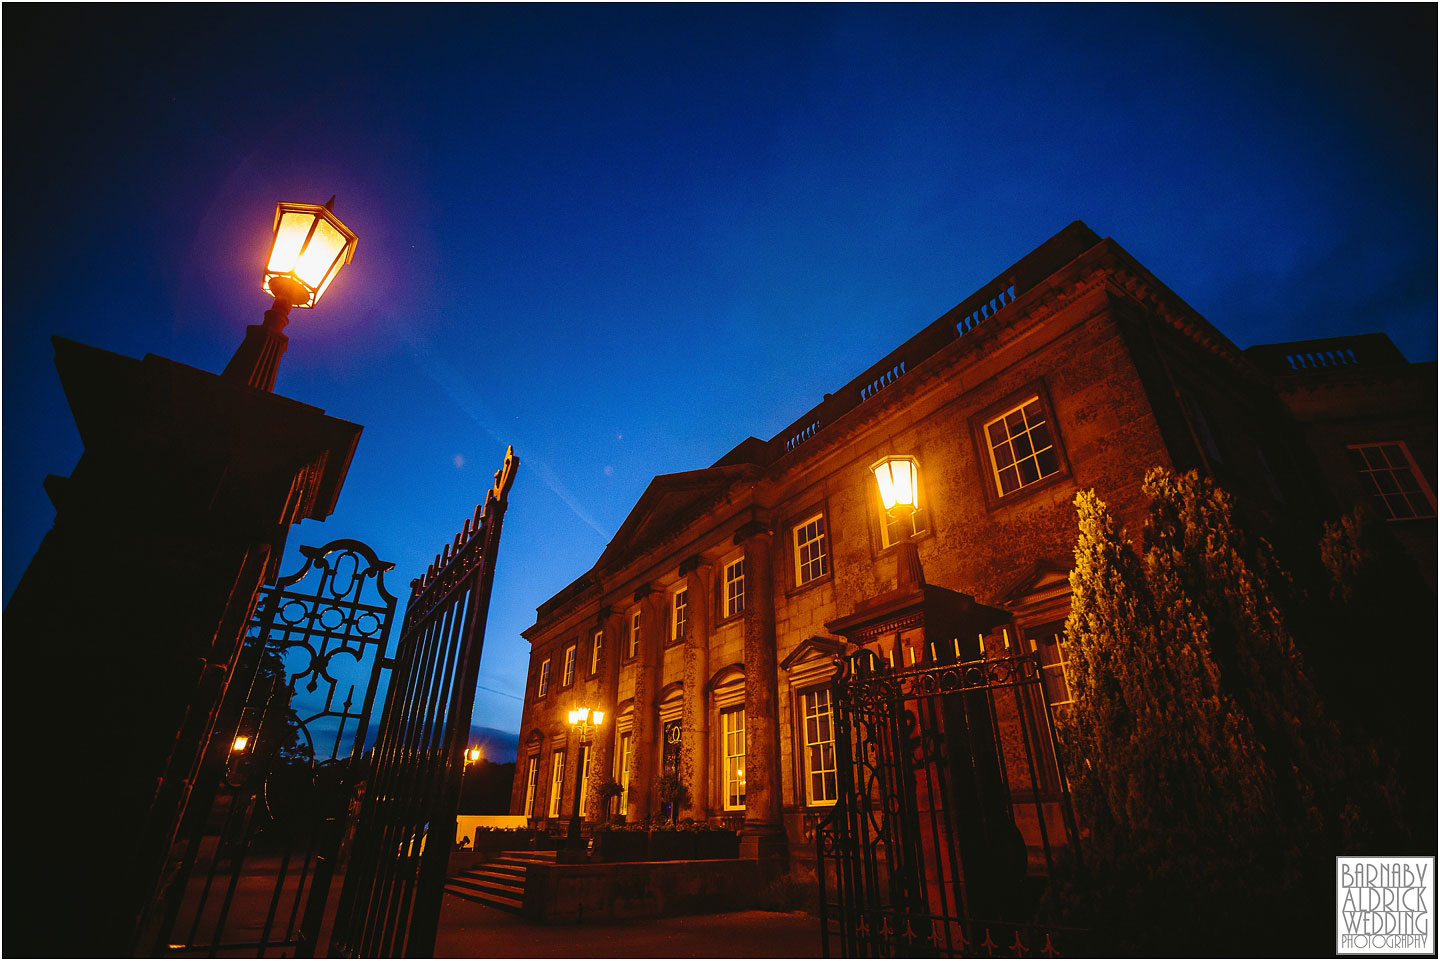 A wedding photograph of Denton Hall at night near Ilkley